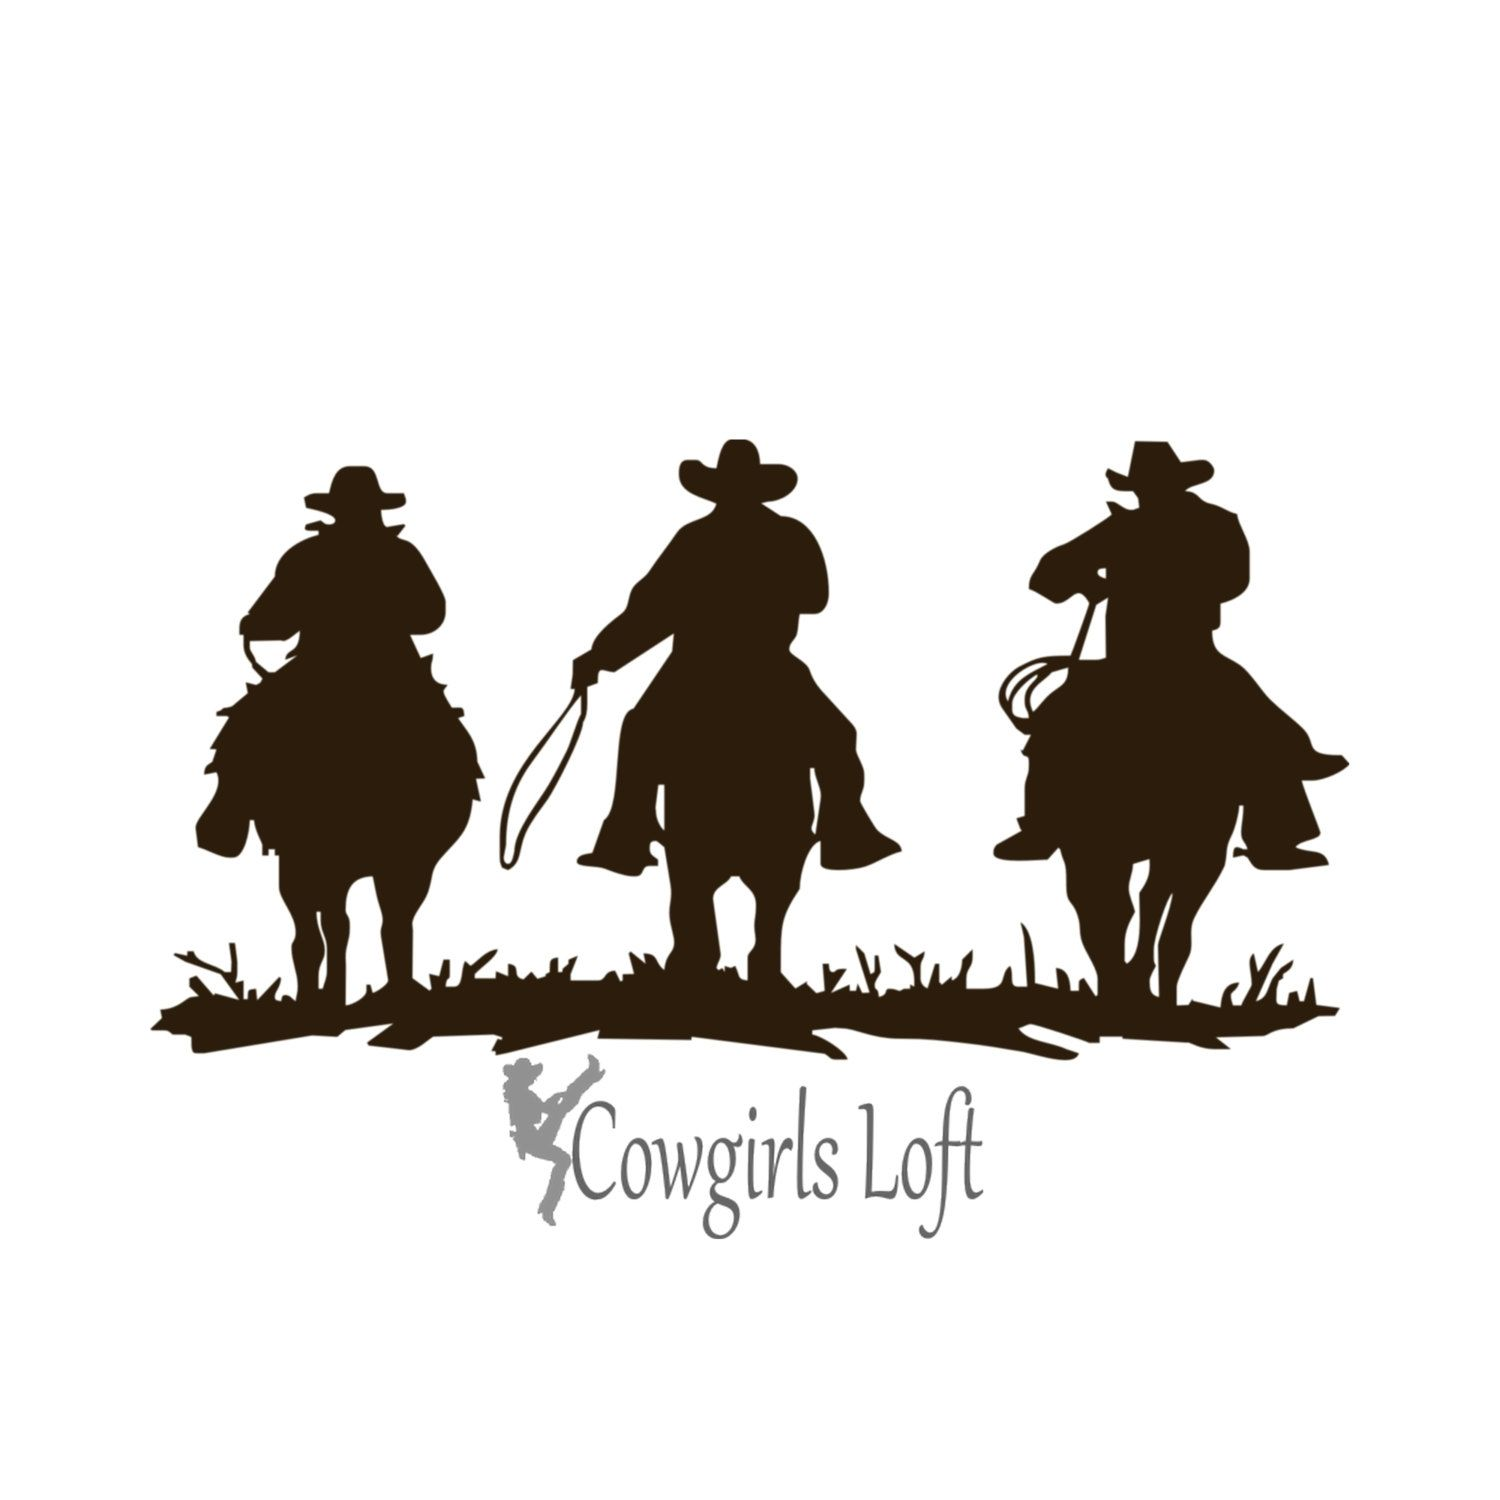 THREE COWBOYS Western Horses Decal  Inch Ships Free USA For - Horse decals for trucks